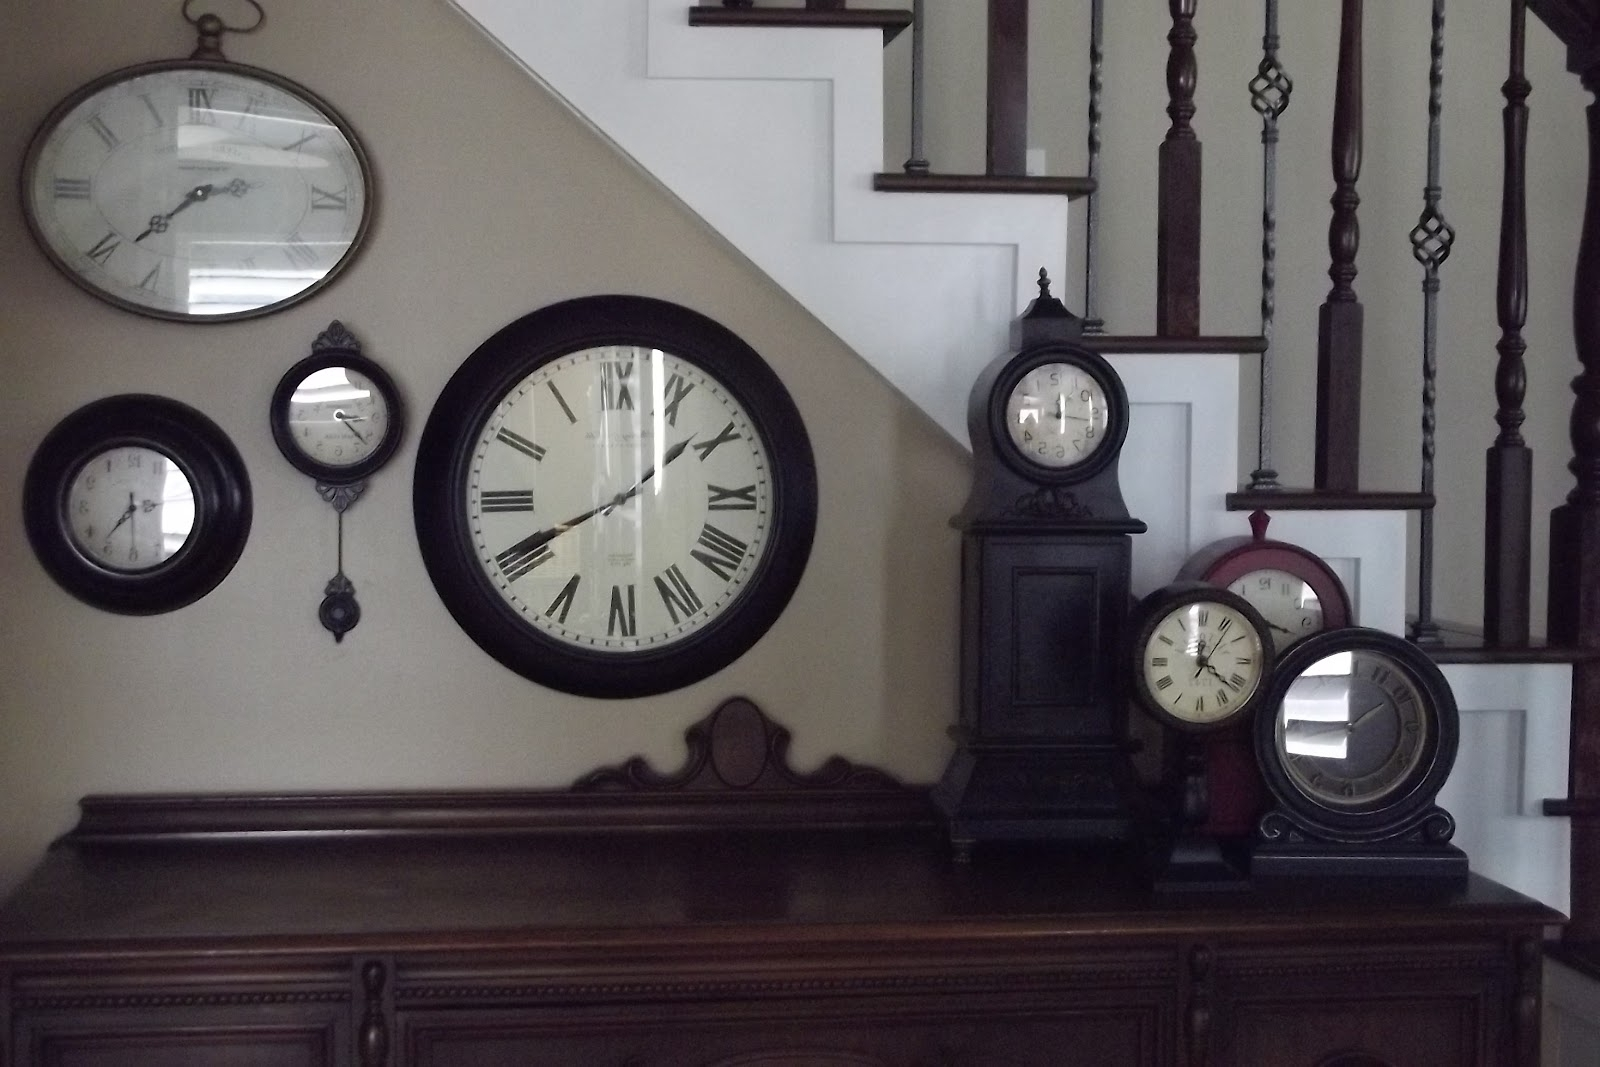 Gallery of Clock Wall Accents (View 9 of 15 Photos)